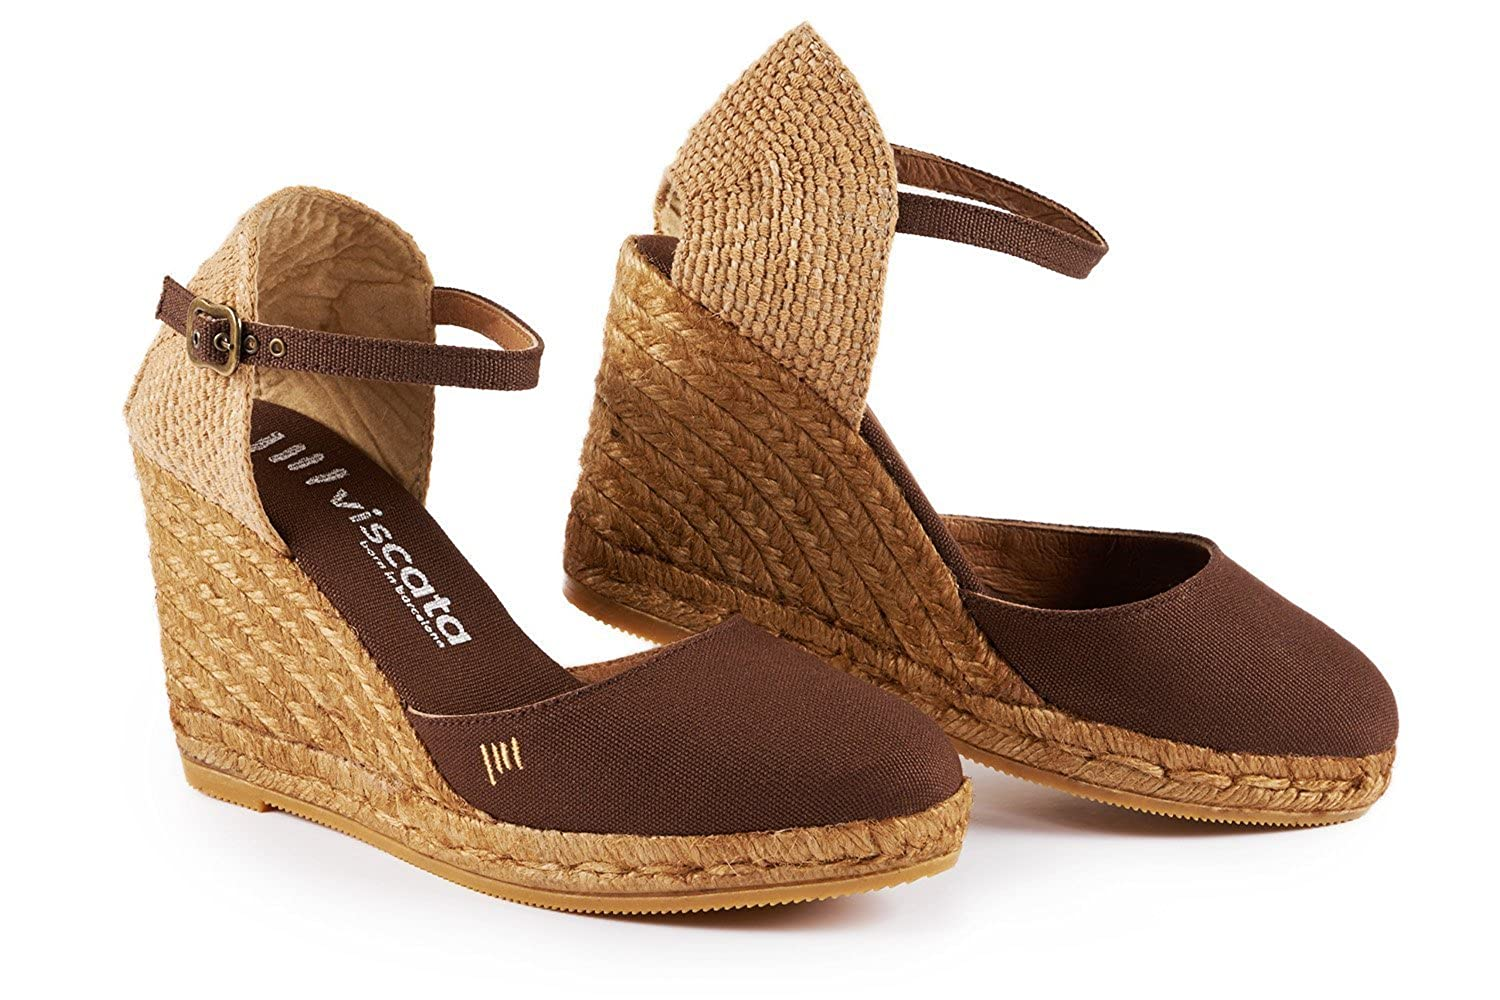 Viscata Satuna 7,6 cm cuneo, ankle-strap, Closed toe, Classic Espadrilles Heel Made in SpainBrown